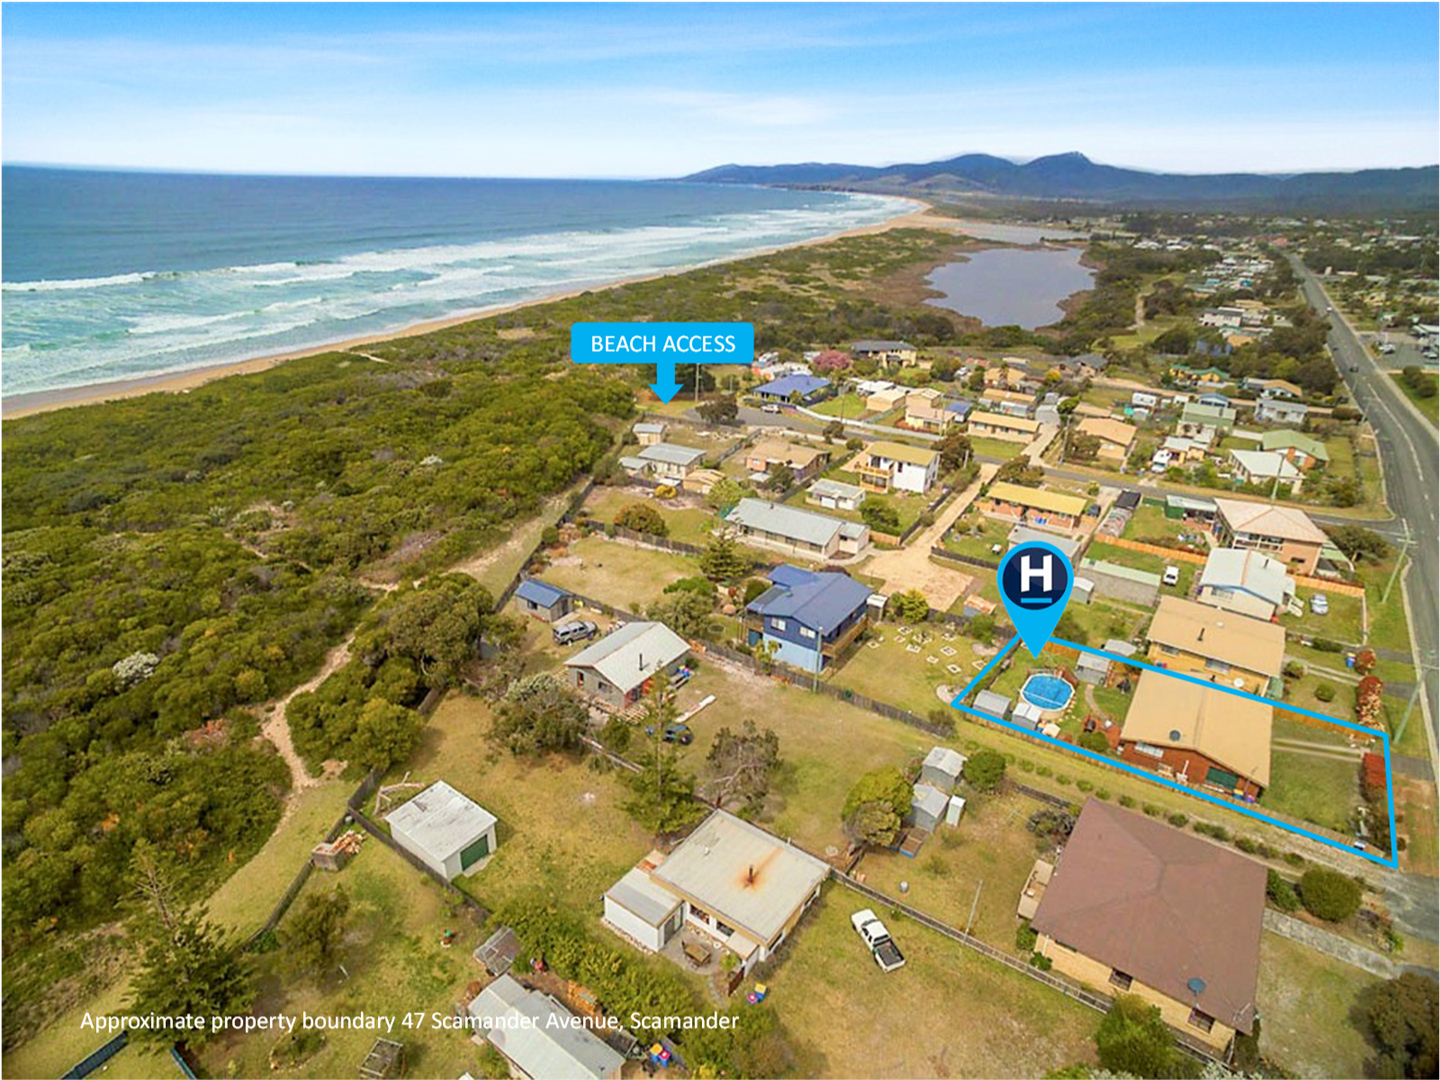 So, so close to the beach. Direct beach access is just a few footsteps around the corner